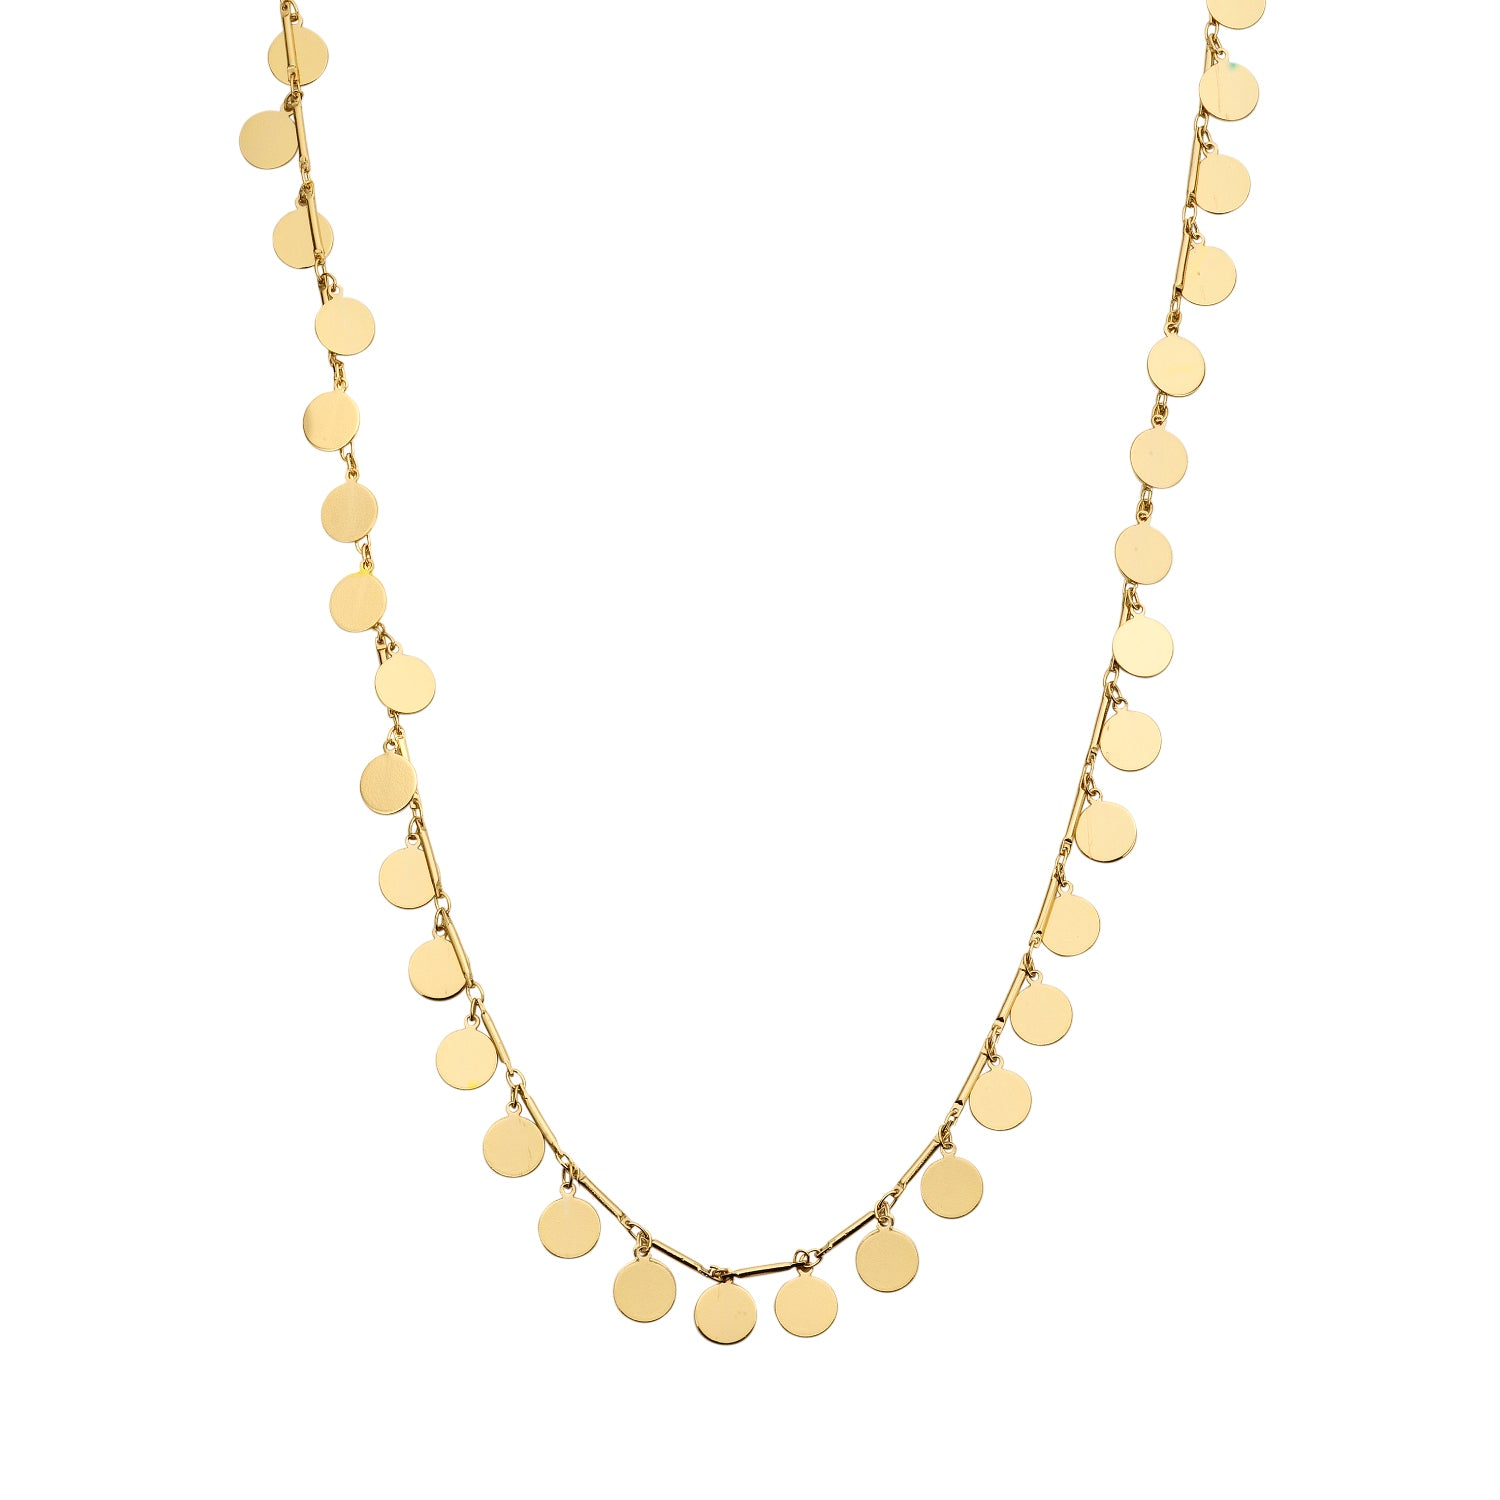 Rond fine chain gold necklace - Souvenirs de Pomme